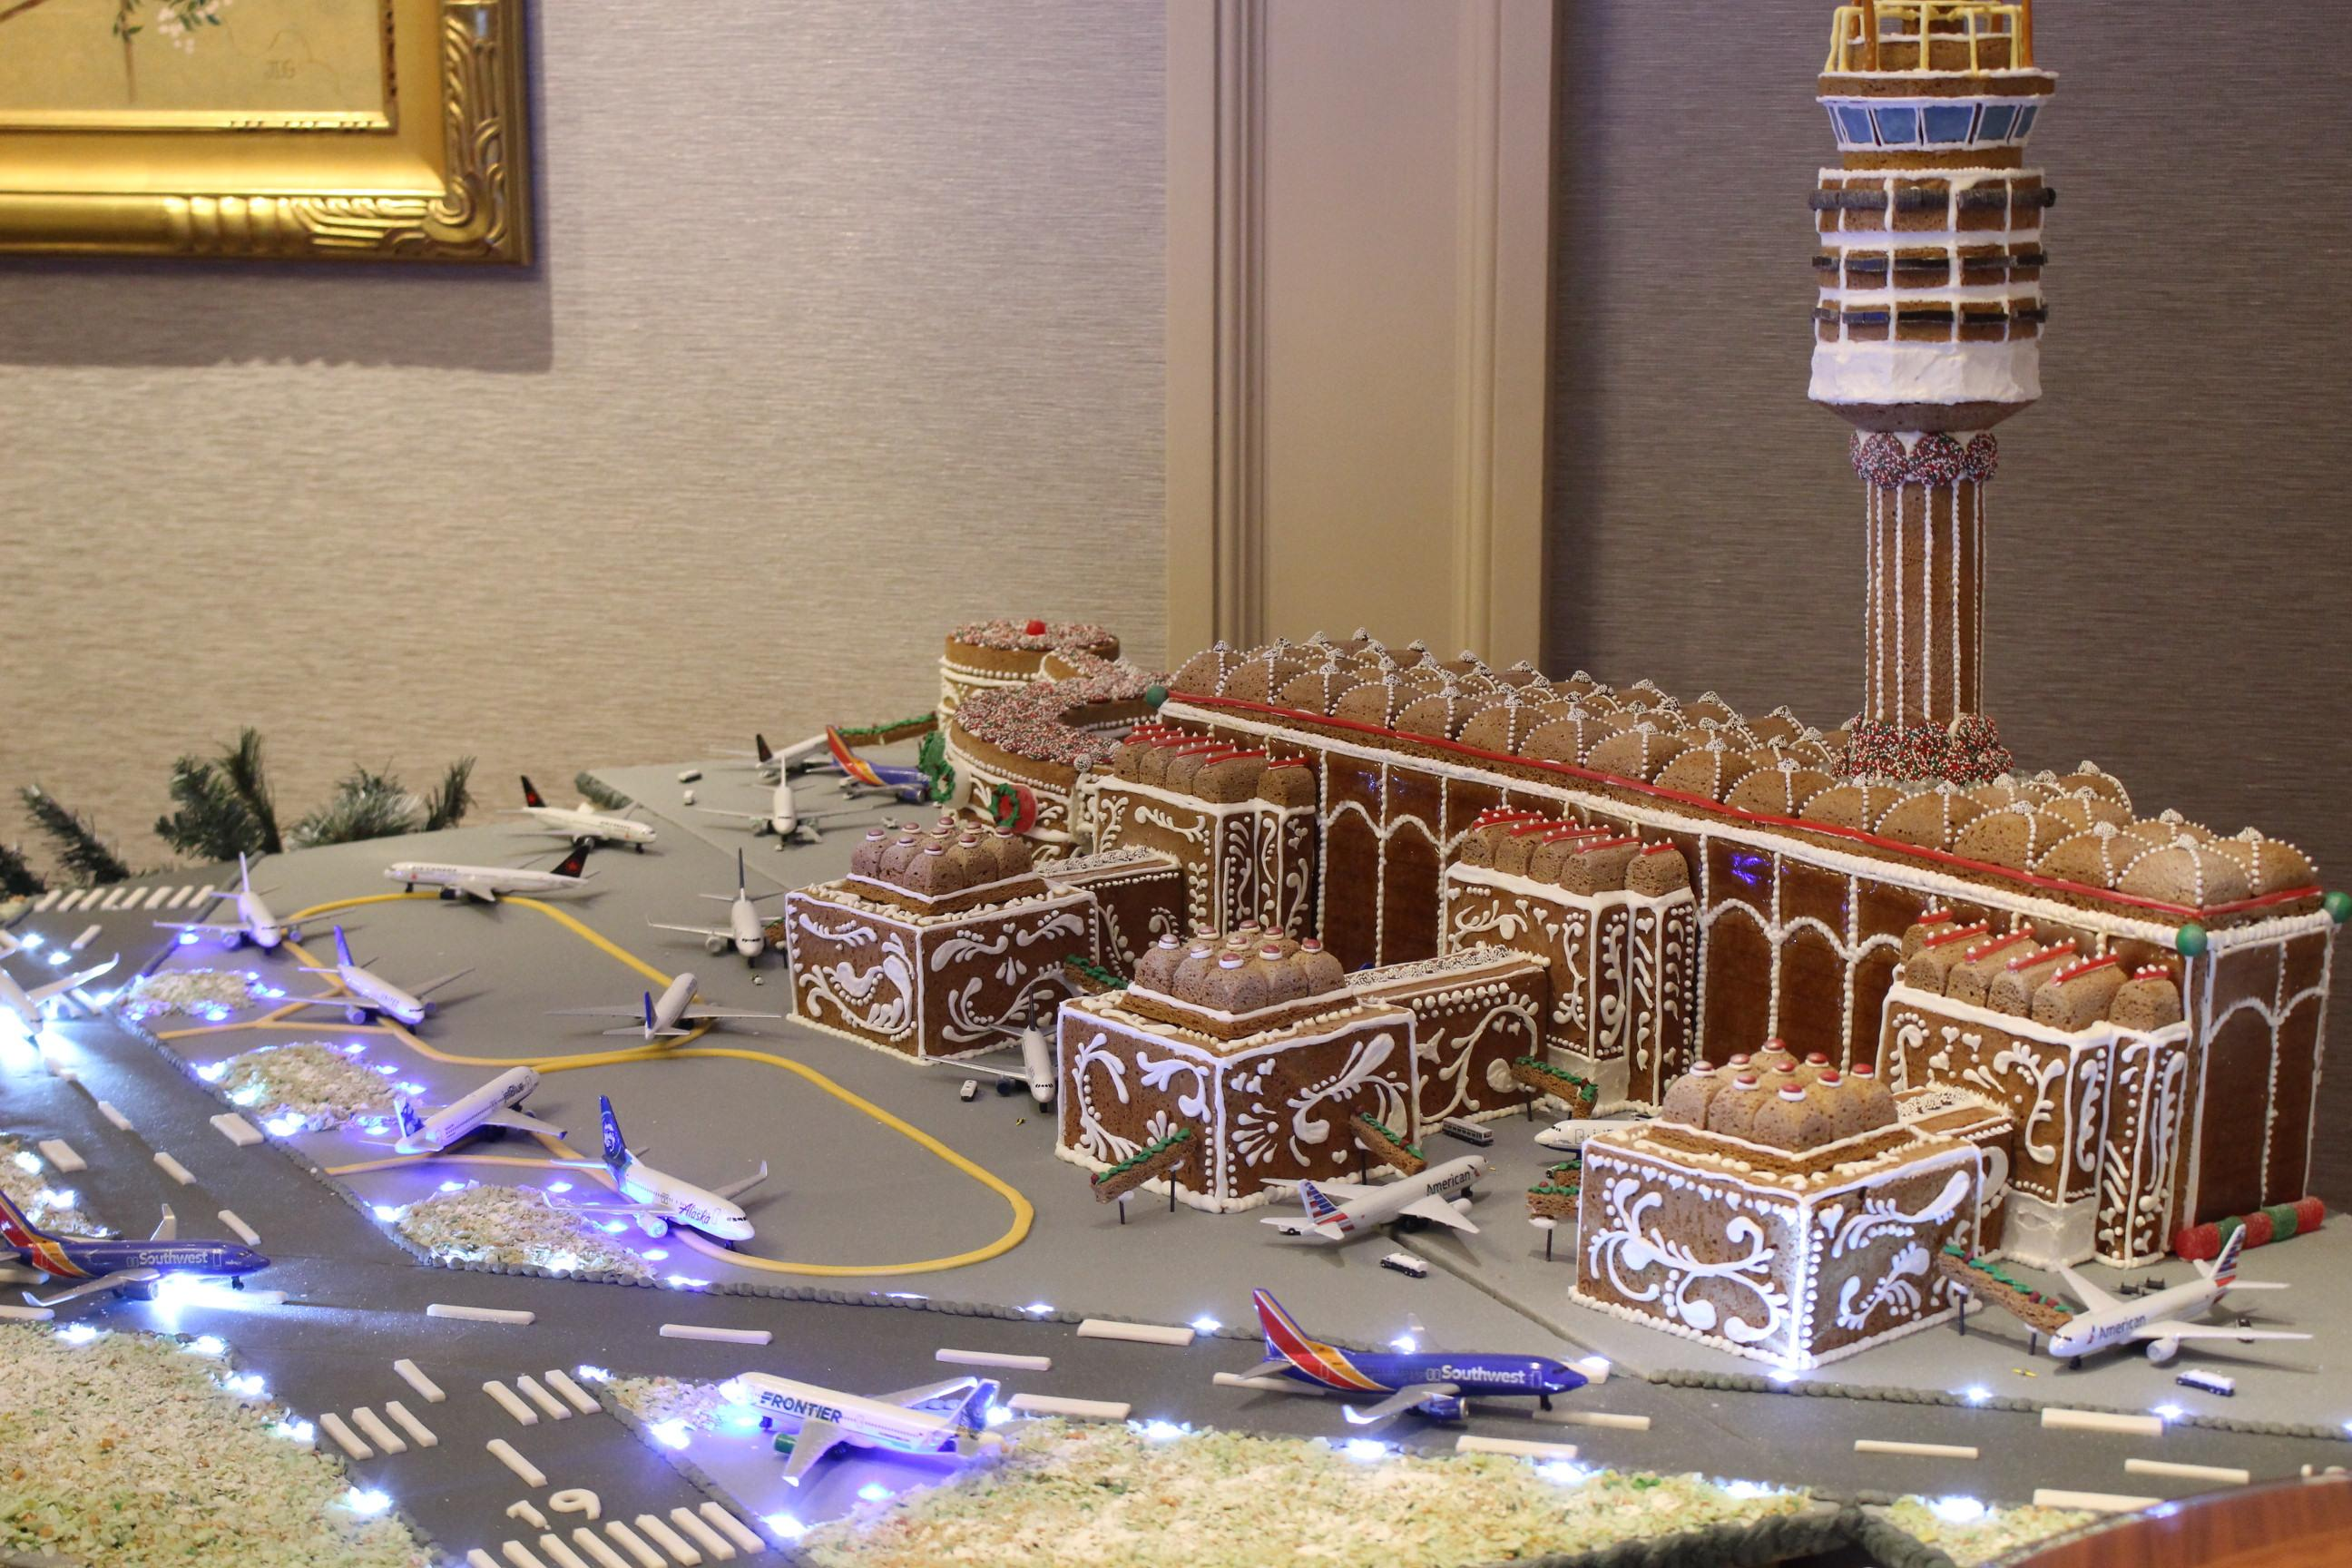 Taking over 350 hours, this display weighs nearly 400 lbs. and contains over 100 LED lights, 30 ft. of electrical wire, 306 pieces of gingerbread and 30 lbs. of fondant (for the airport's three runways). It even includes a real-time live audio feed from the control tower at DCA. (Image: Courtesy The Willard InterContinental)